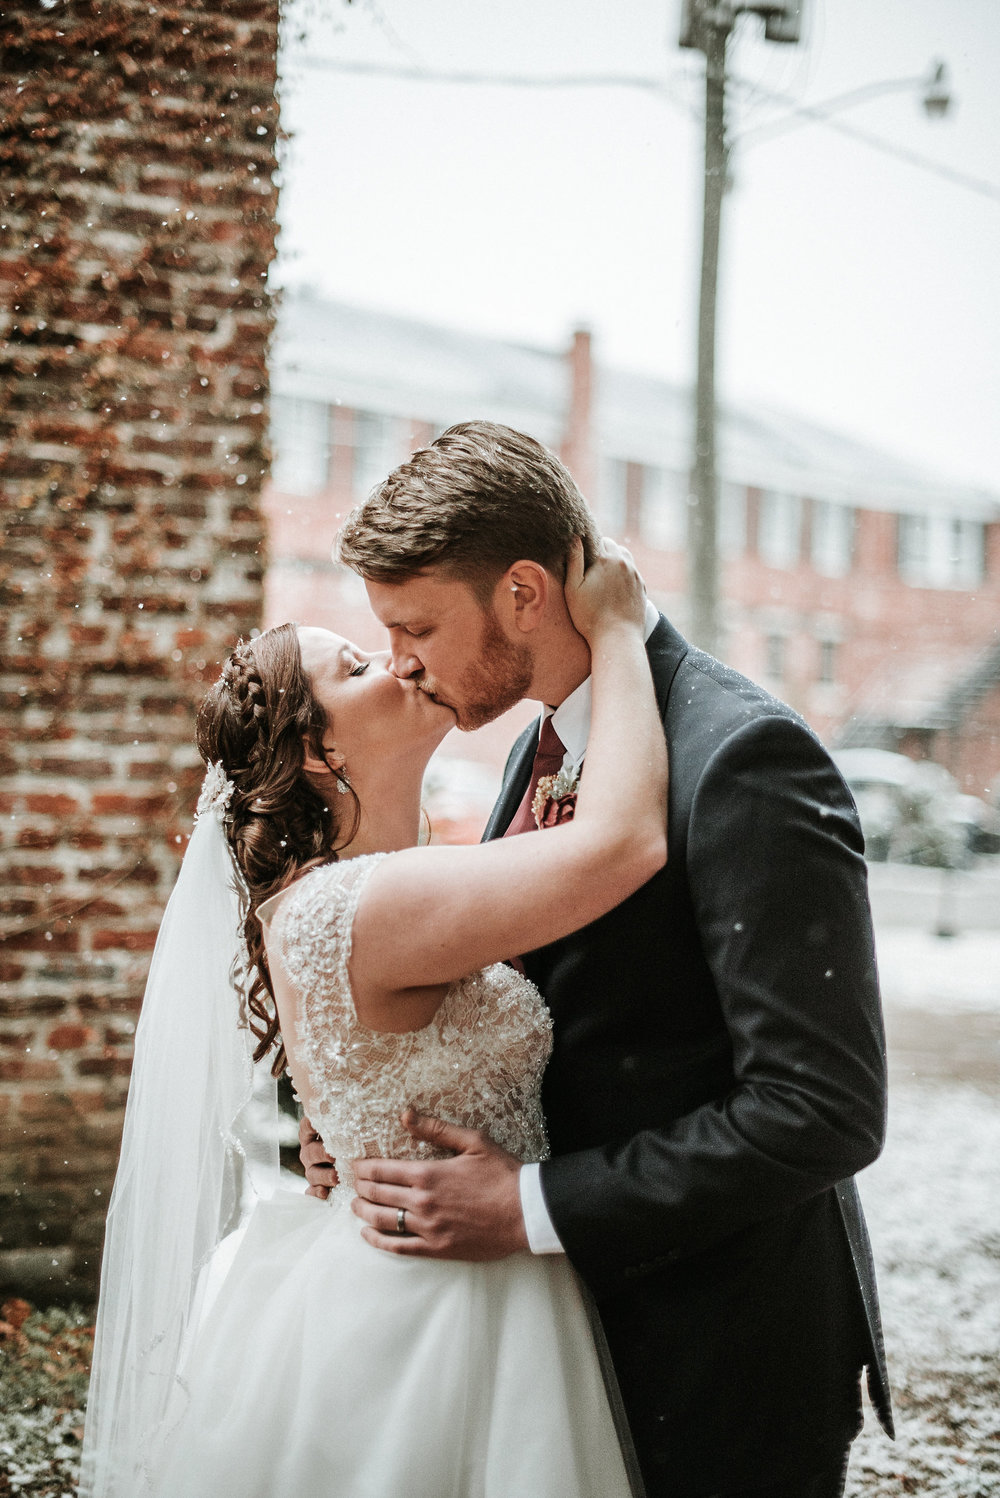 Bride and groom kissing in snow